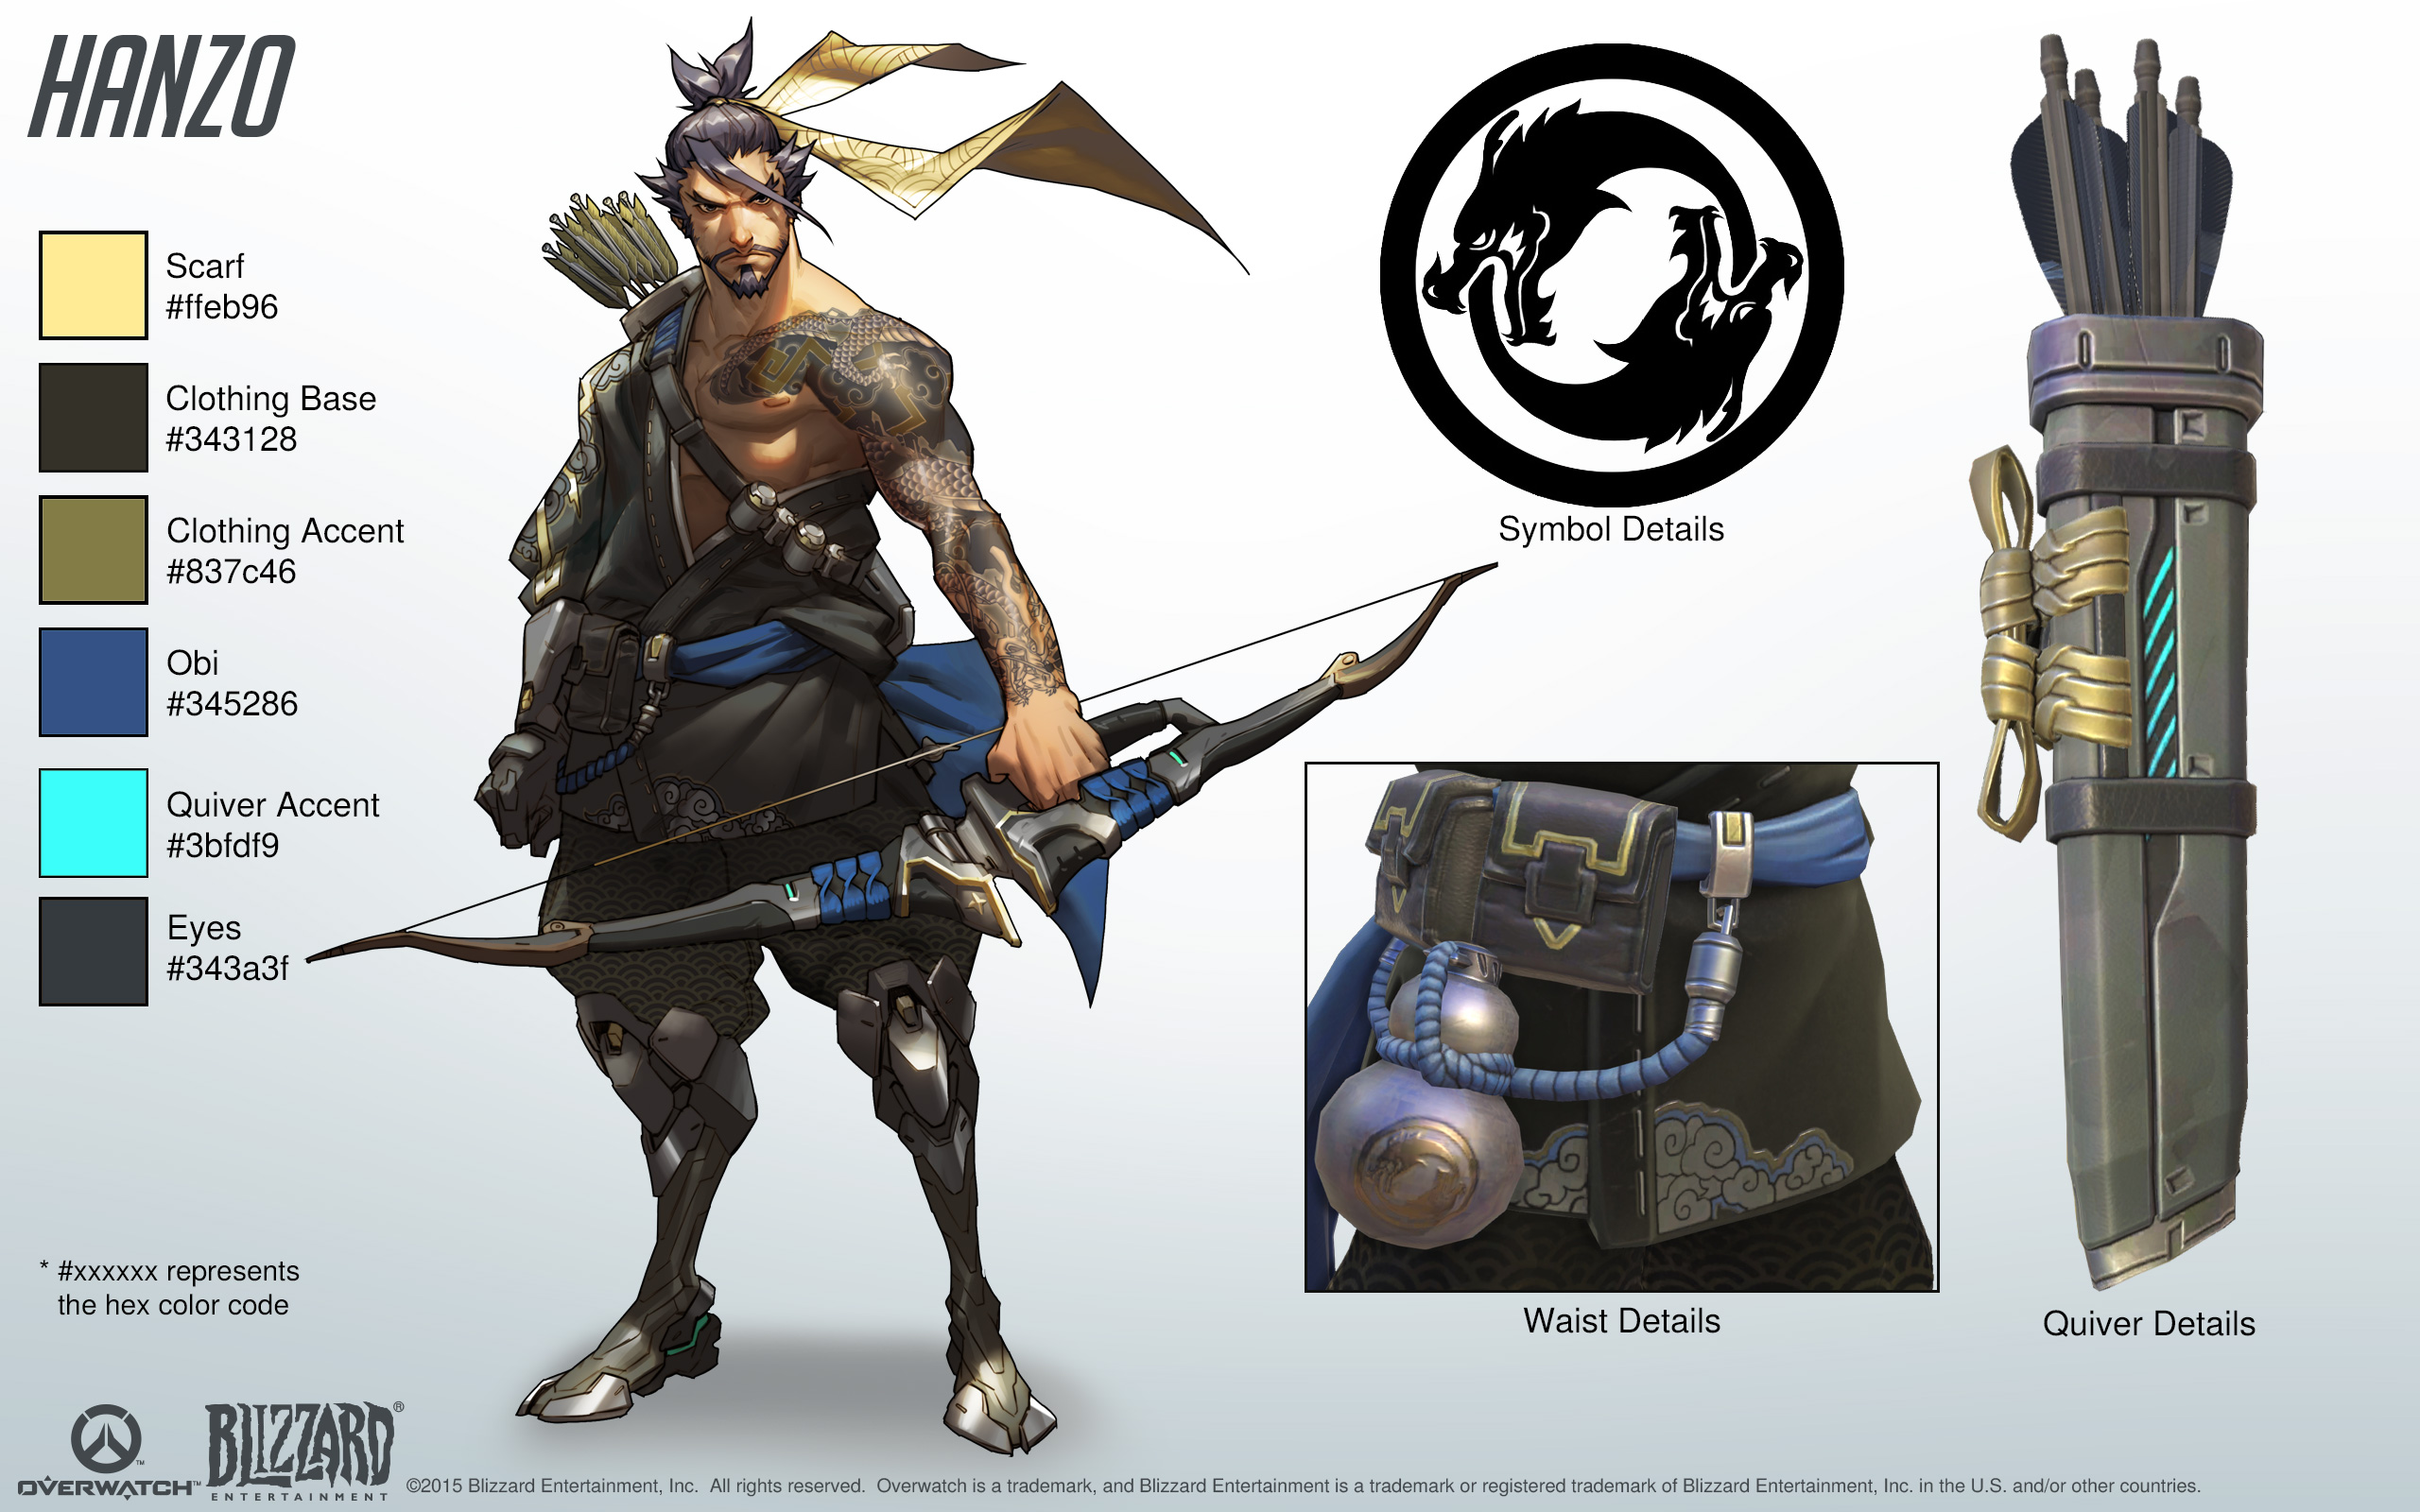 hanzo___overwatch___close_look_at_model_by_plank_69-d9bm03j.png